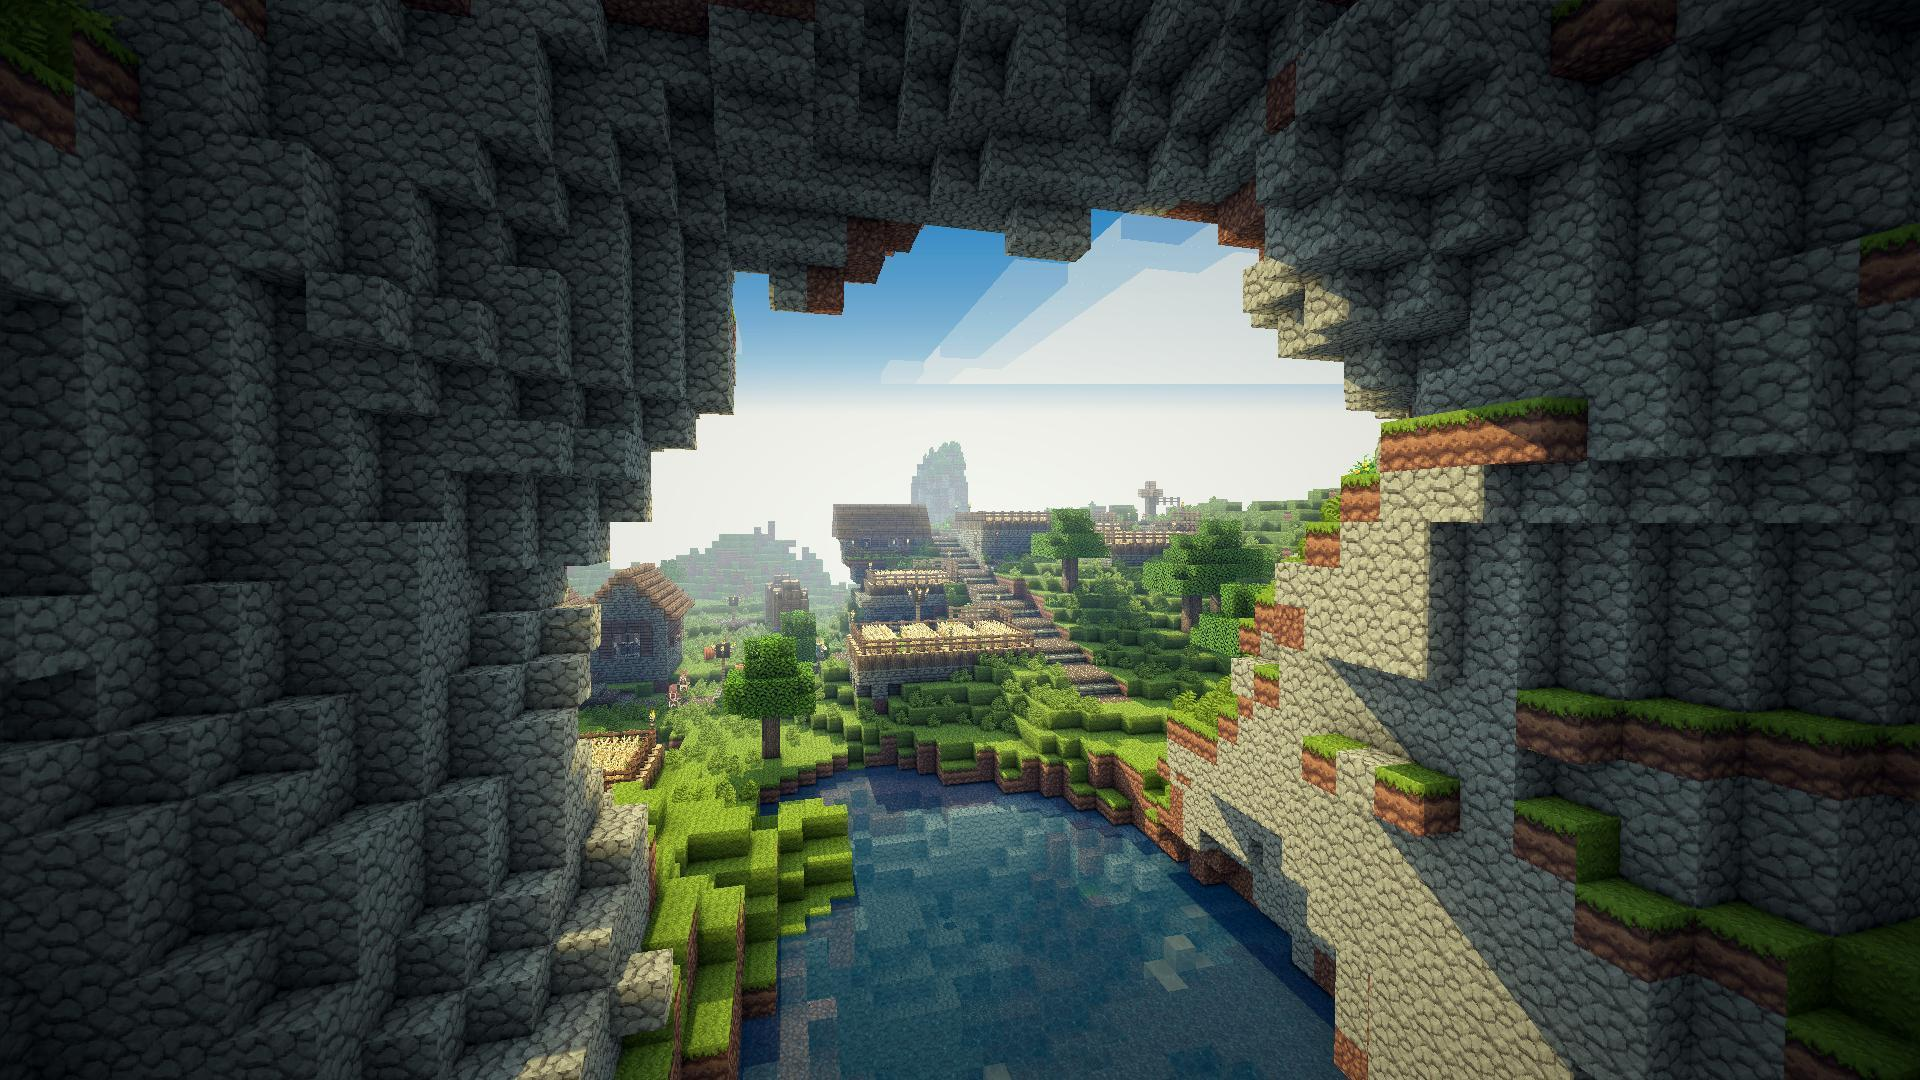 Minecraft Backgrounds - Wallpaper Cave